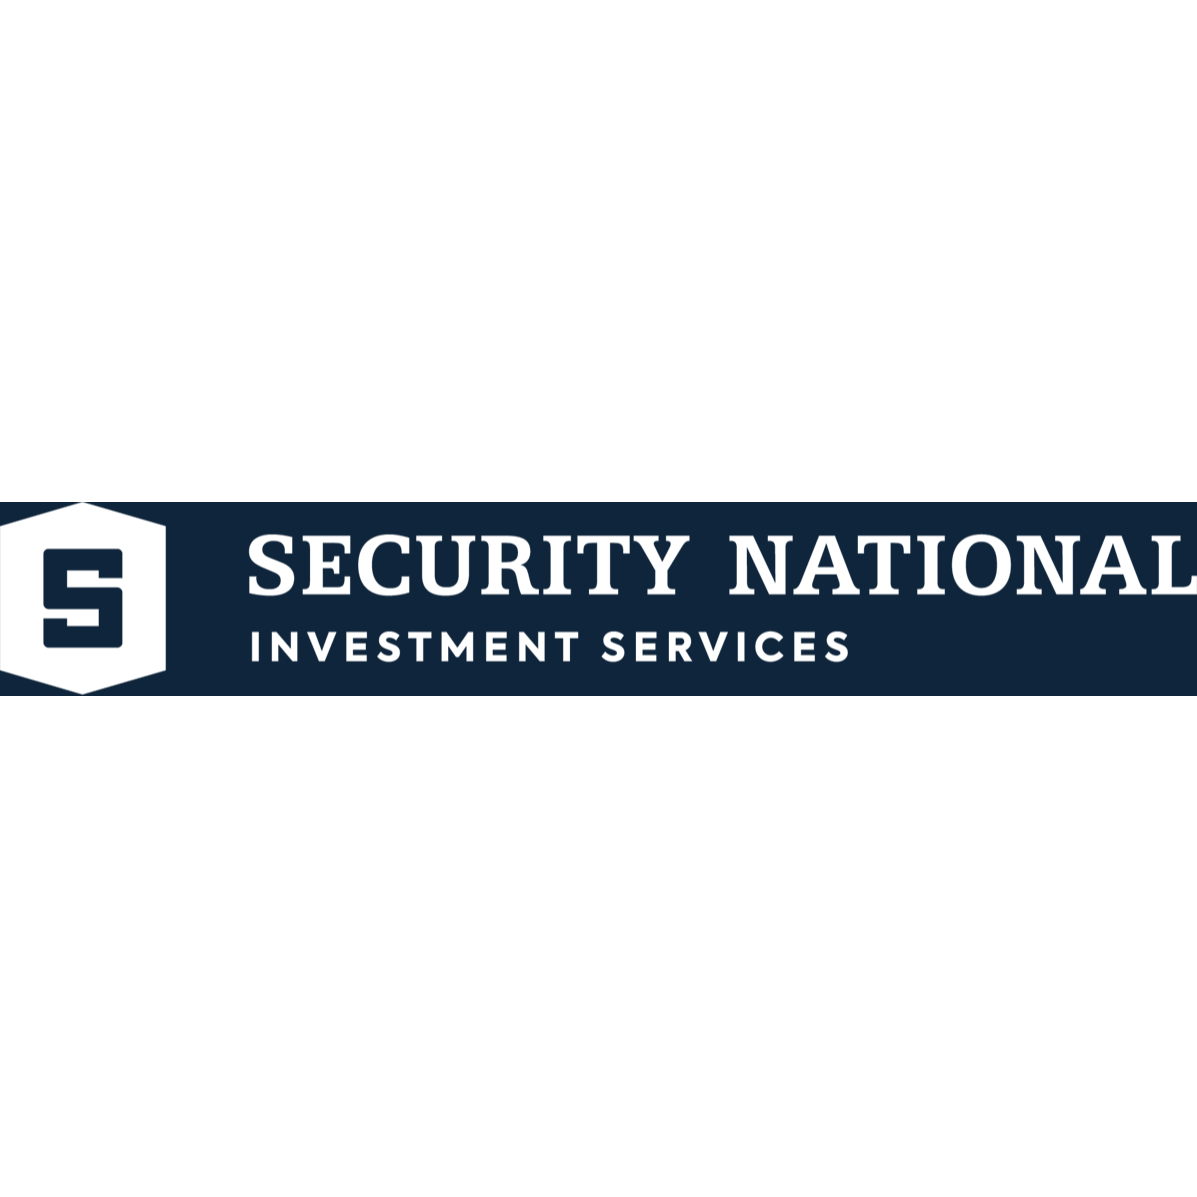 Security National Investment Services